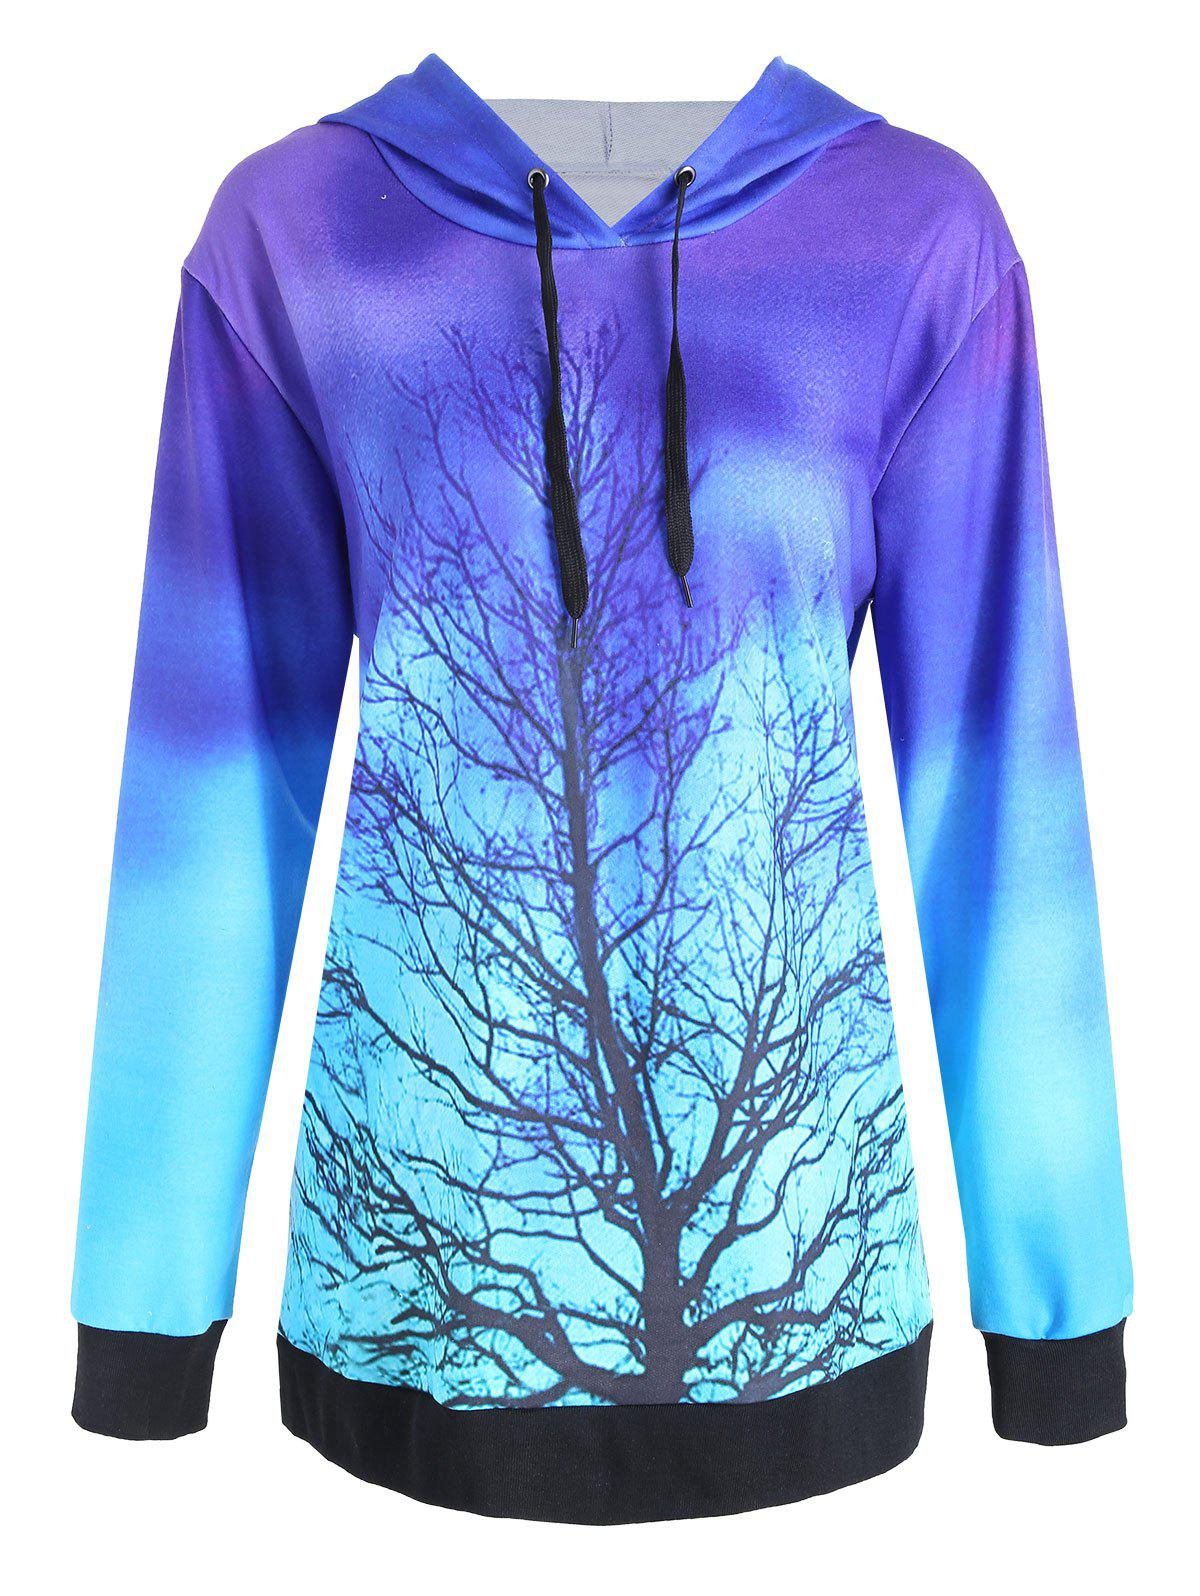 Plus Size Colorful Tree Galaxy Printed HoodieWOMEN<br><br>Size: 5XL; Color: BLUE; Material: Cotton Blend,Polyester; Shirt Length: Regular; Sleeve Length: Full; Style: Fashion; Pattern Style: Print; Season: Fall,Winter; Weight: 0.4500kg; Package Contents: 1 x Hoodie;